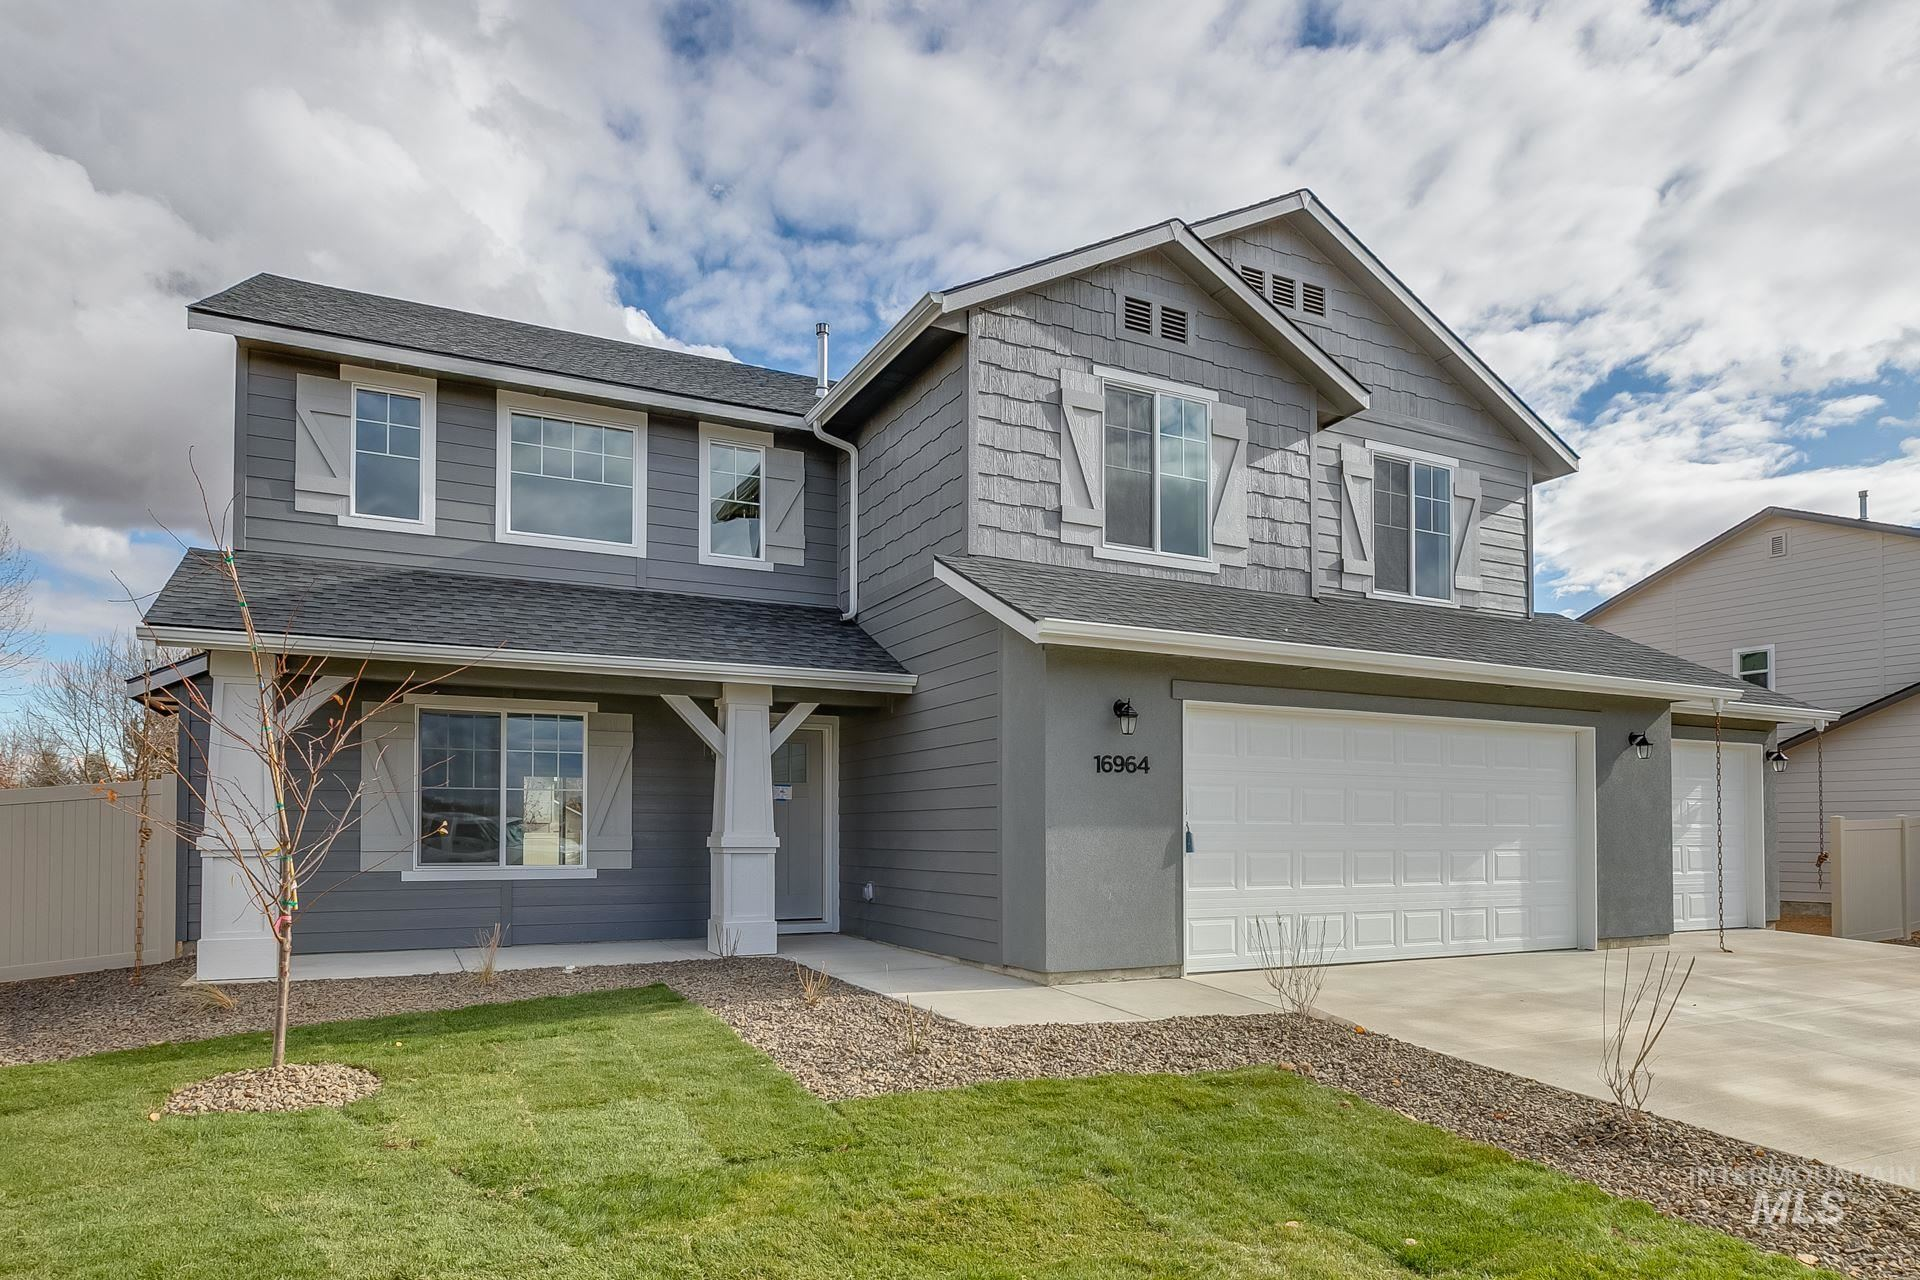 Photo of 17776 N Pegram Way, Nampa, ID 83687 (MLS # 98787485)